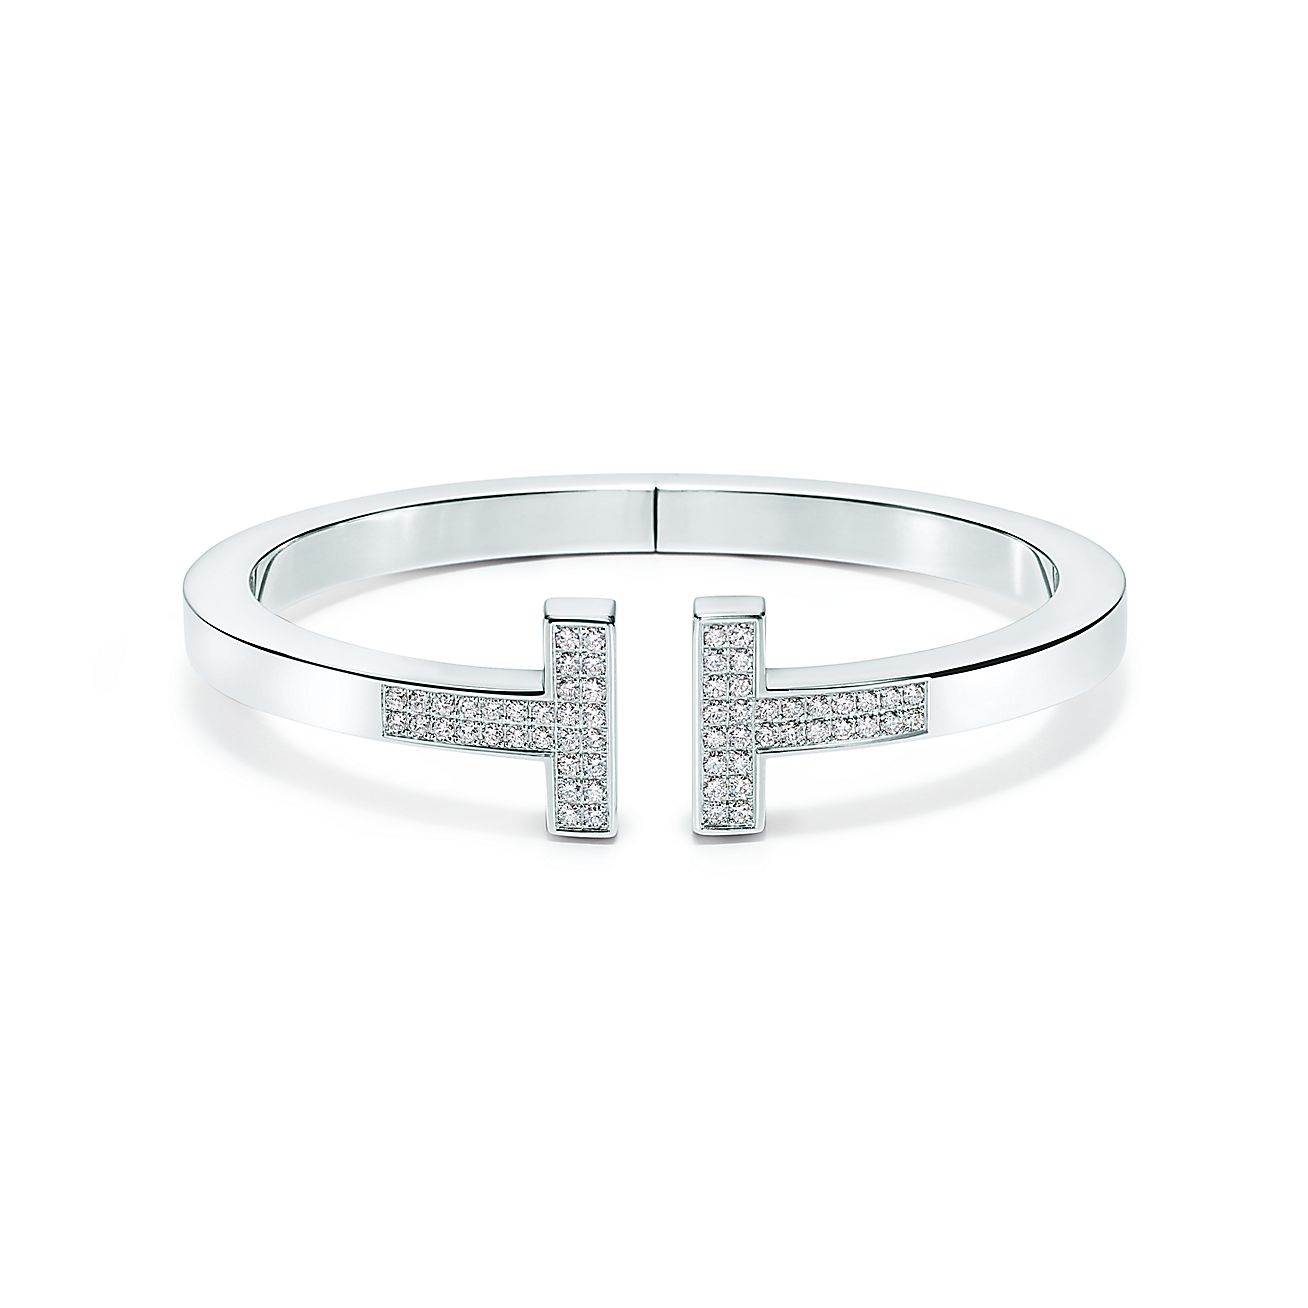 Tiffany T Pavé Diamond Square Bracelet